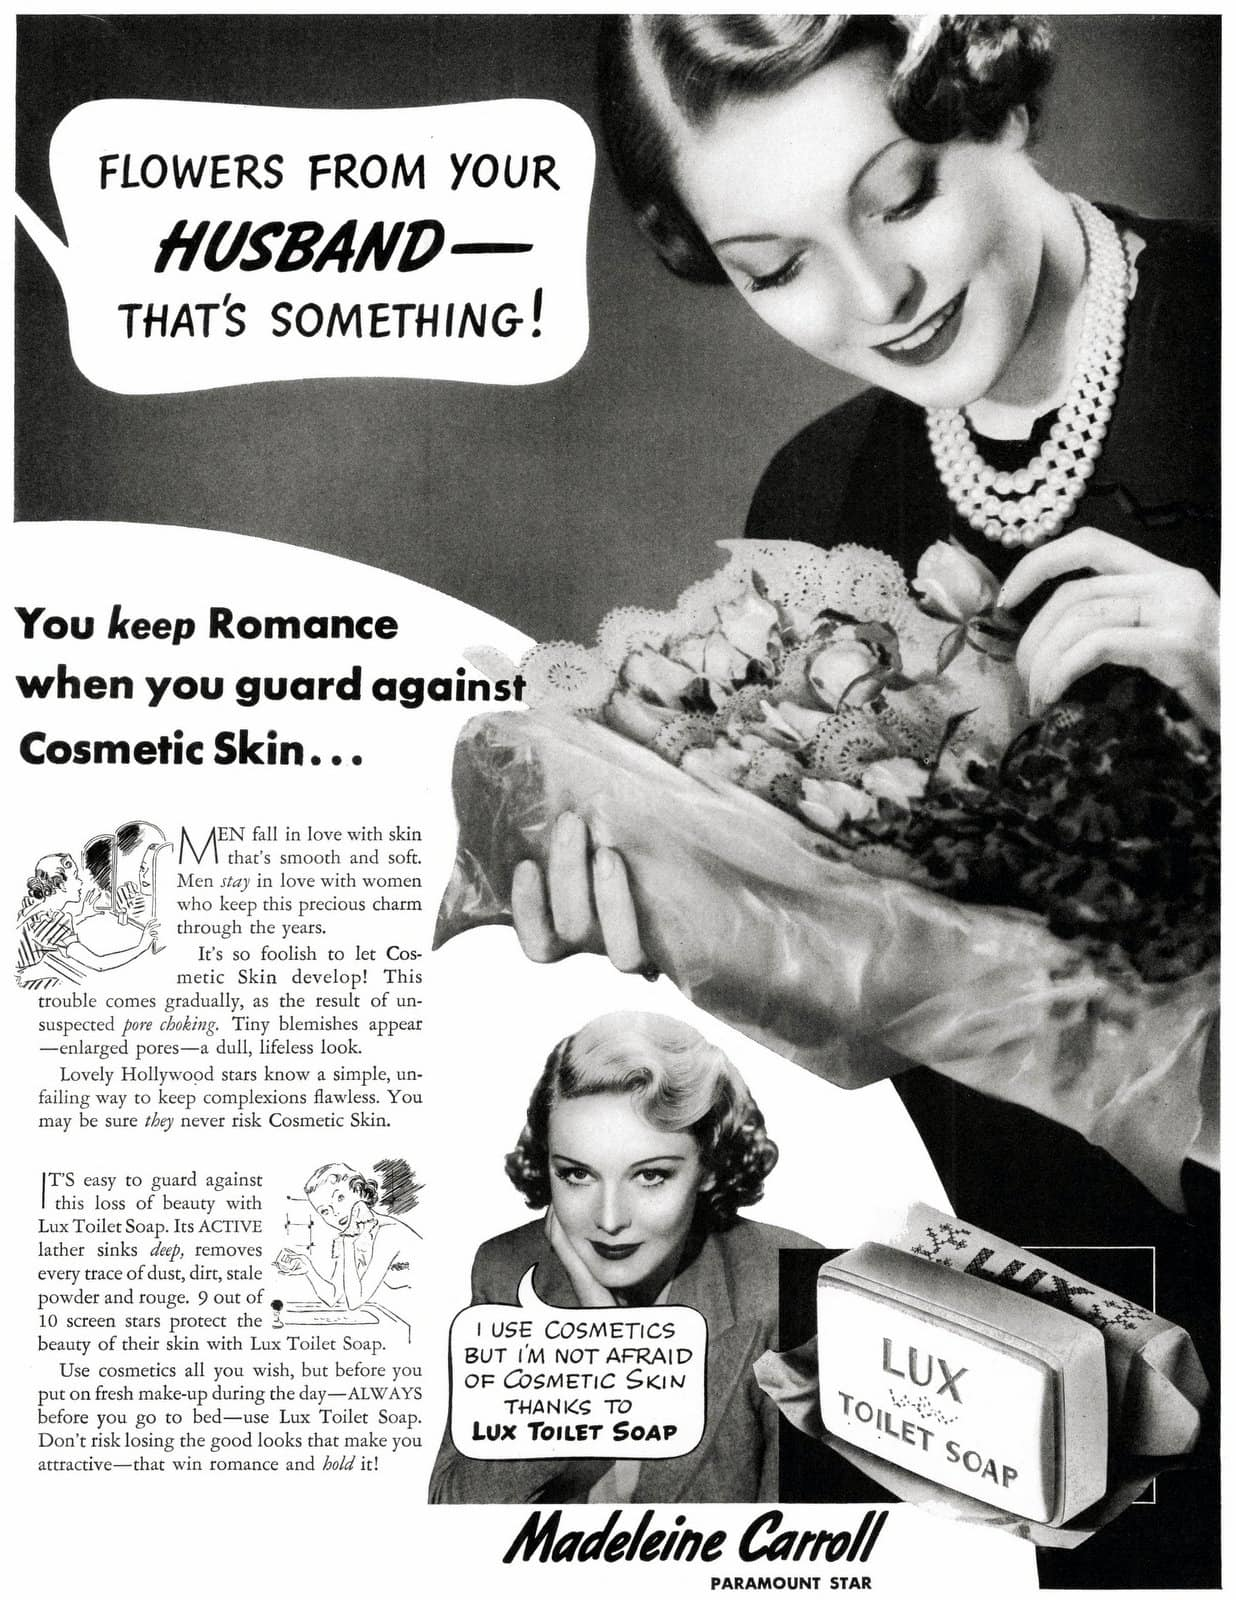 Lux toilet soap for 30s beauty (1937)